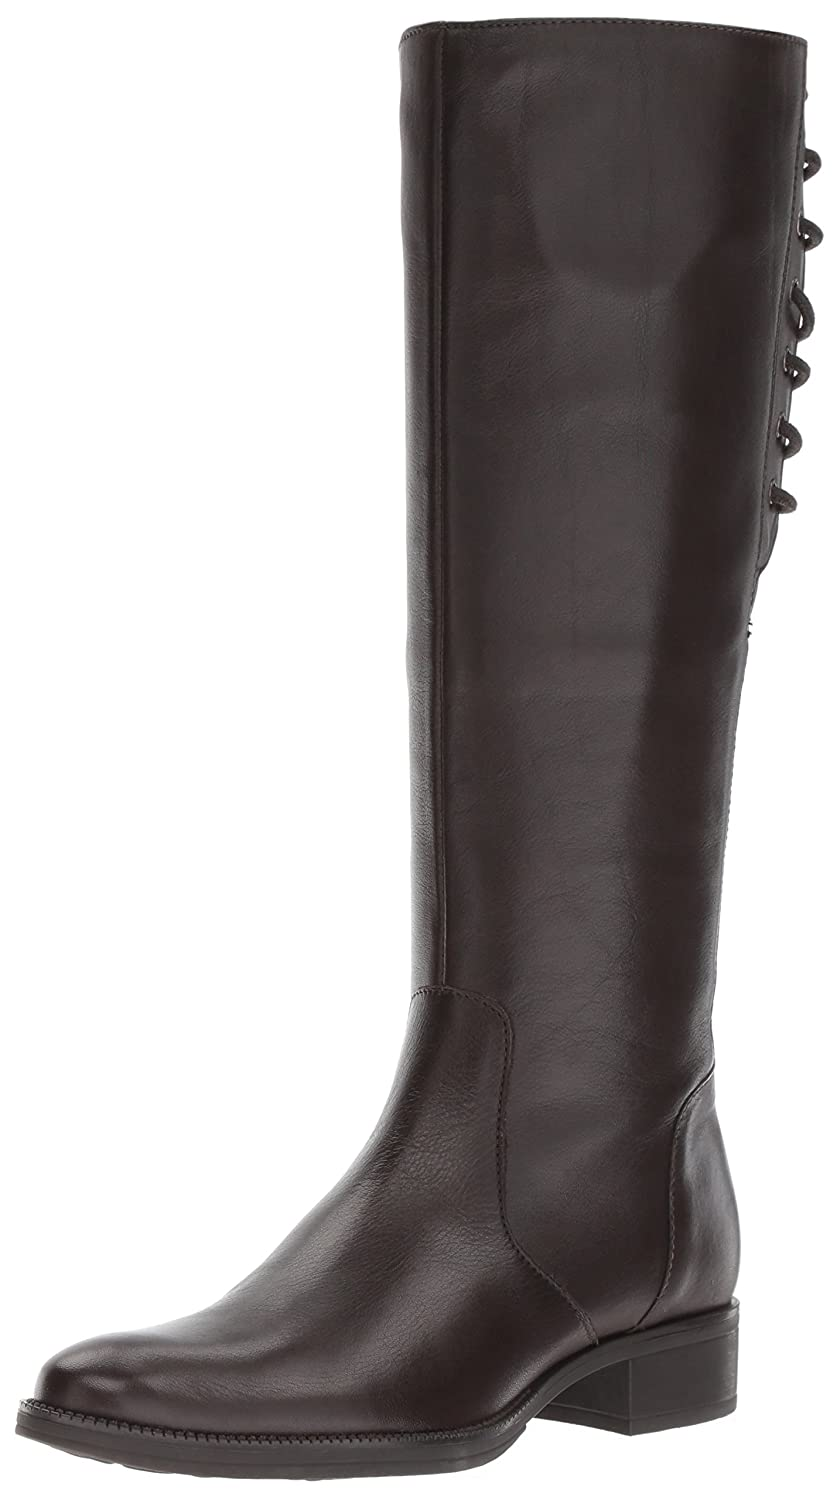 Geox Women's Mendi 44 Winter Boot B01NCZ9LTF 39 M US|Coffee EU / 9 B(M) US|Coffee M 4ed6ae